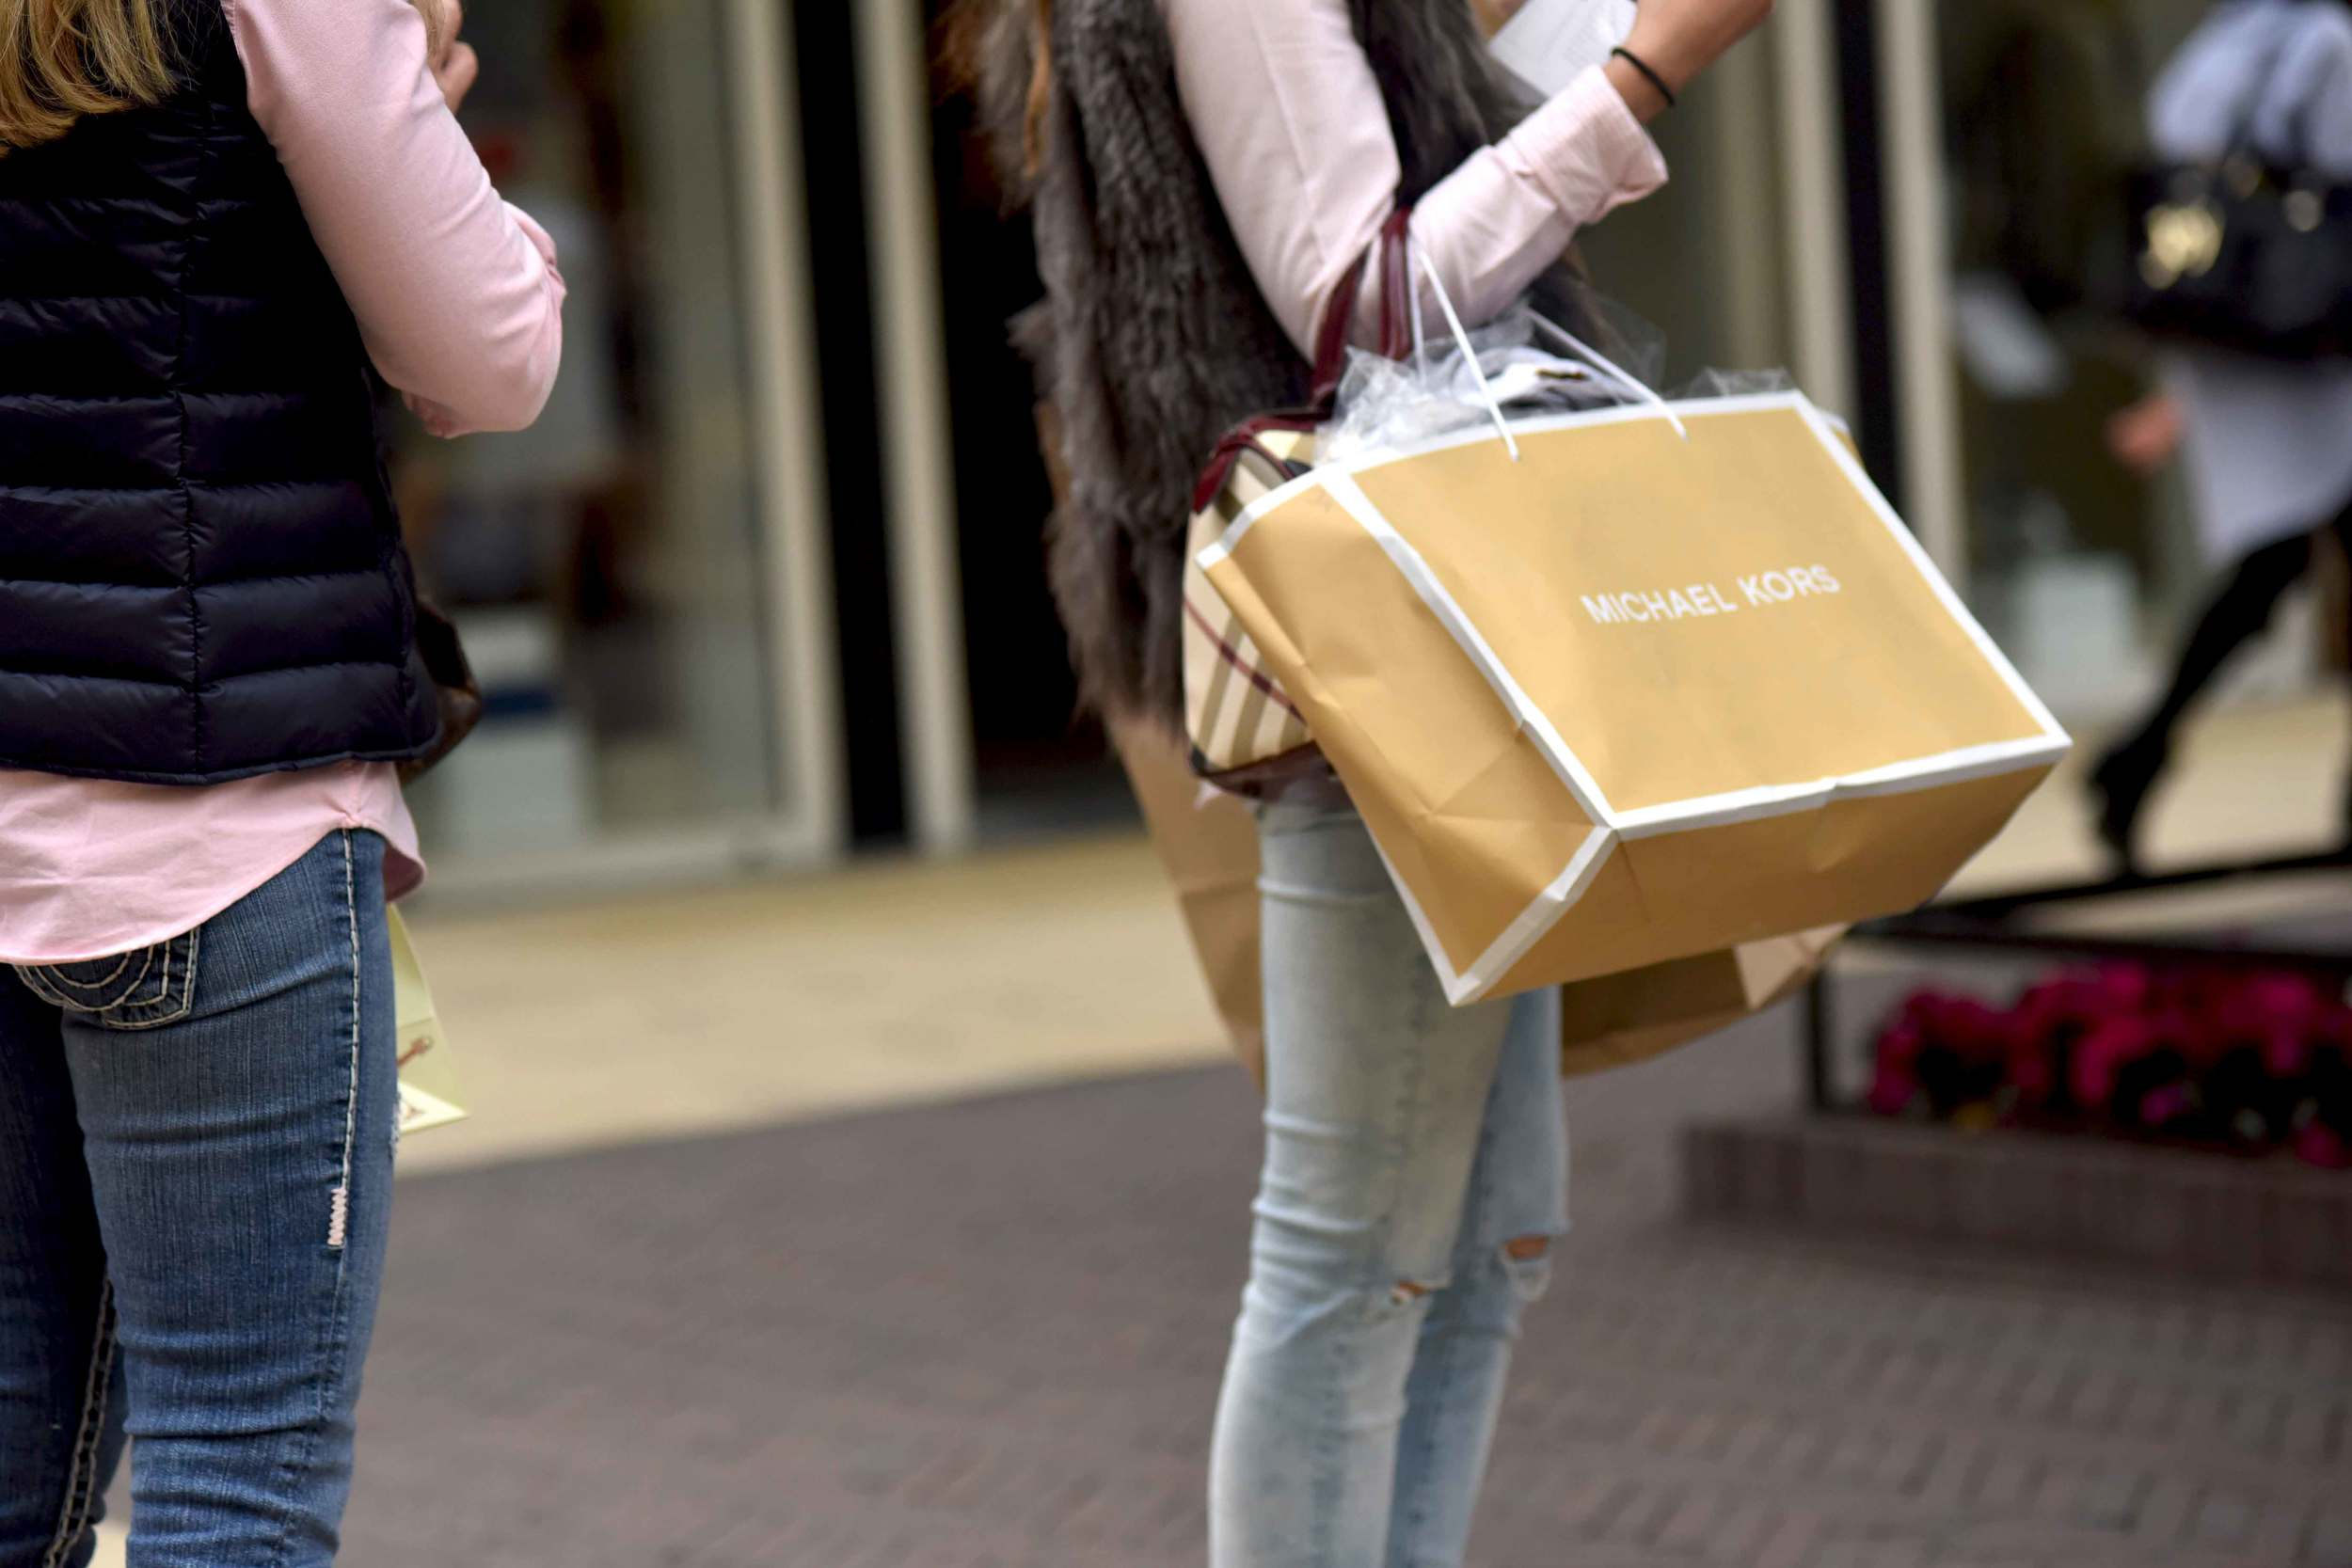 Designer Outlet Roermond, Netherlands. Image©thingstodot.com